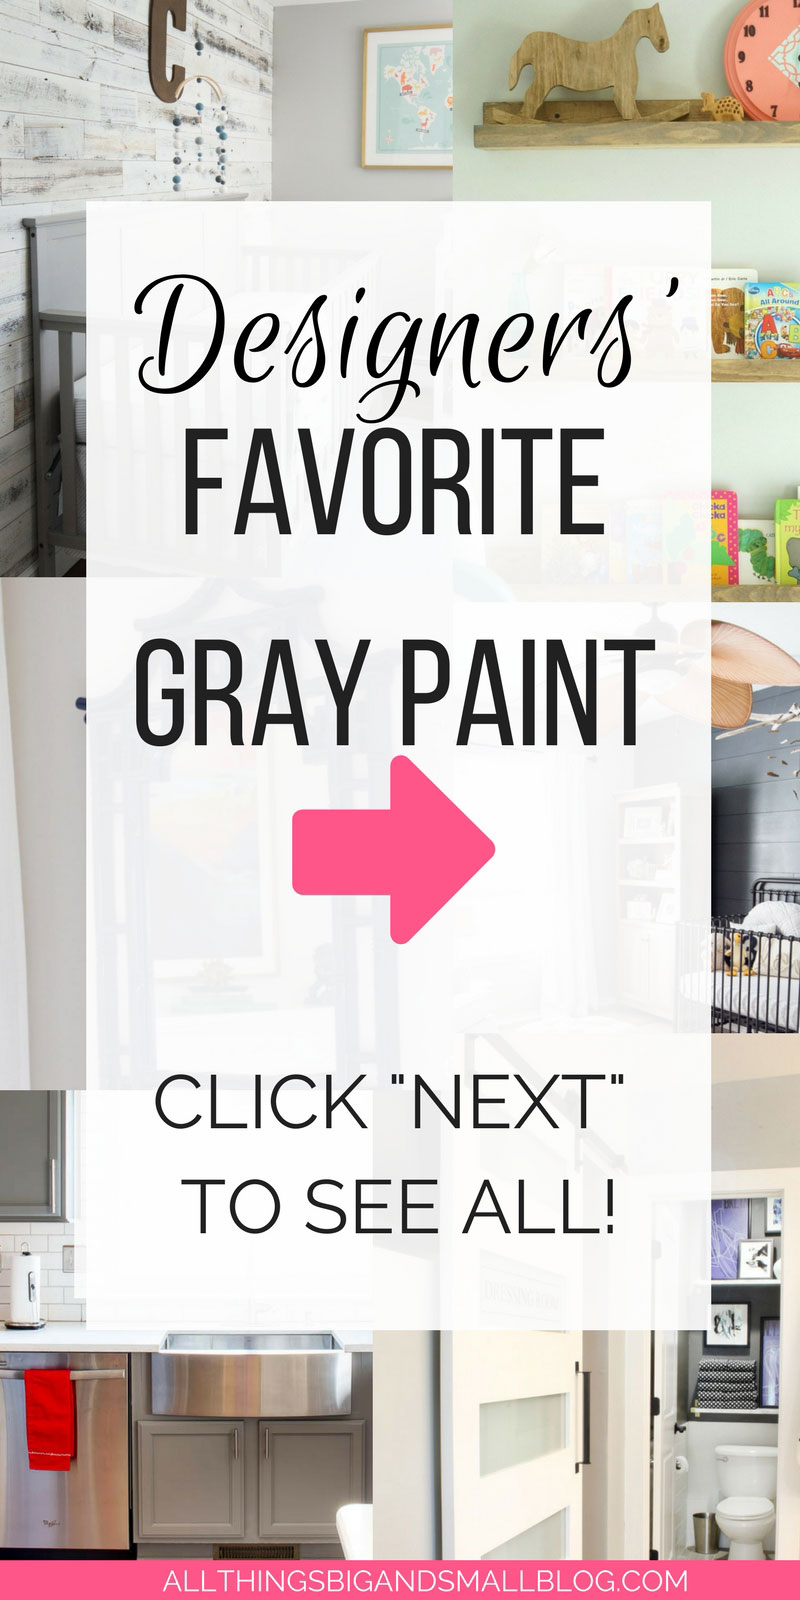 Prime Grey Paint 11 Home Design Bloggers Share Their Favorites Complete Home Design Collection Papxelindsey Bellcom